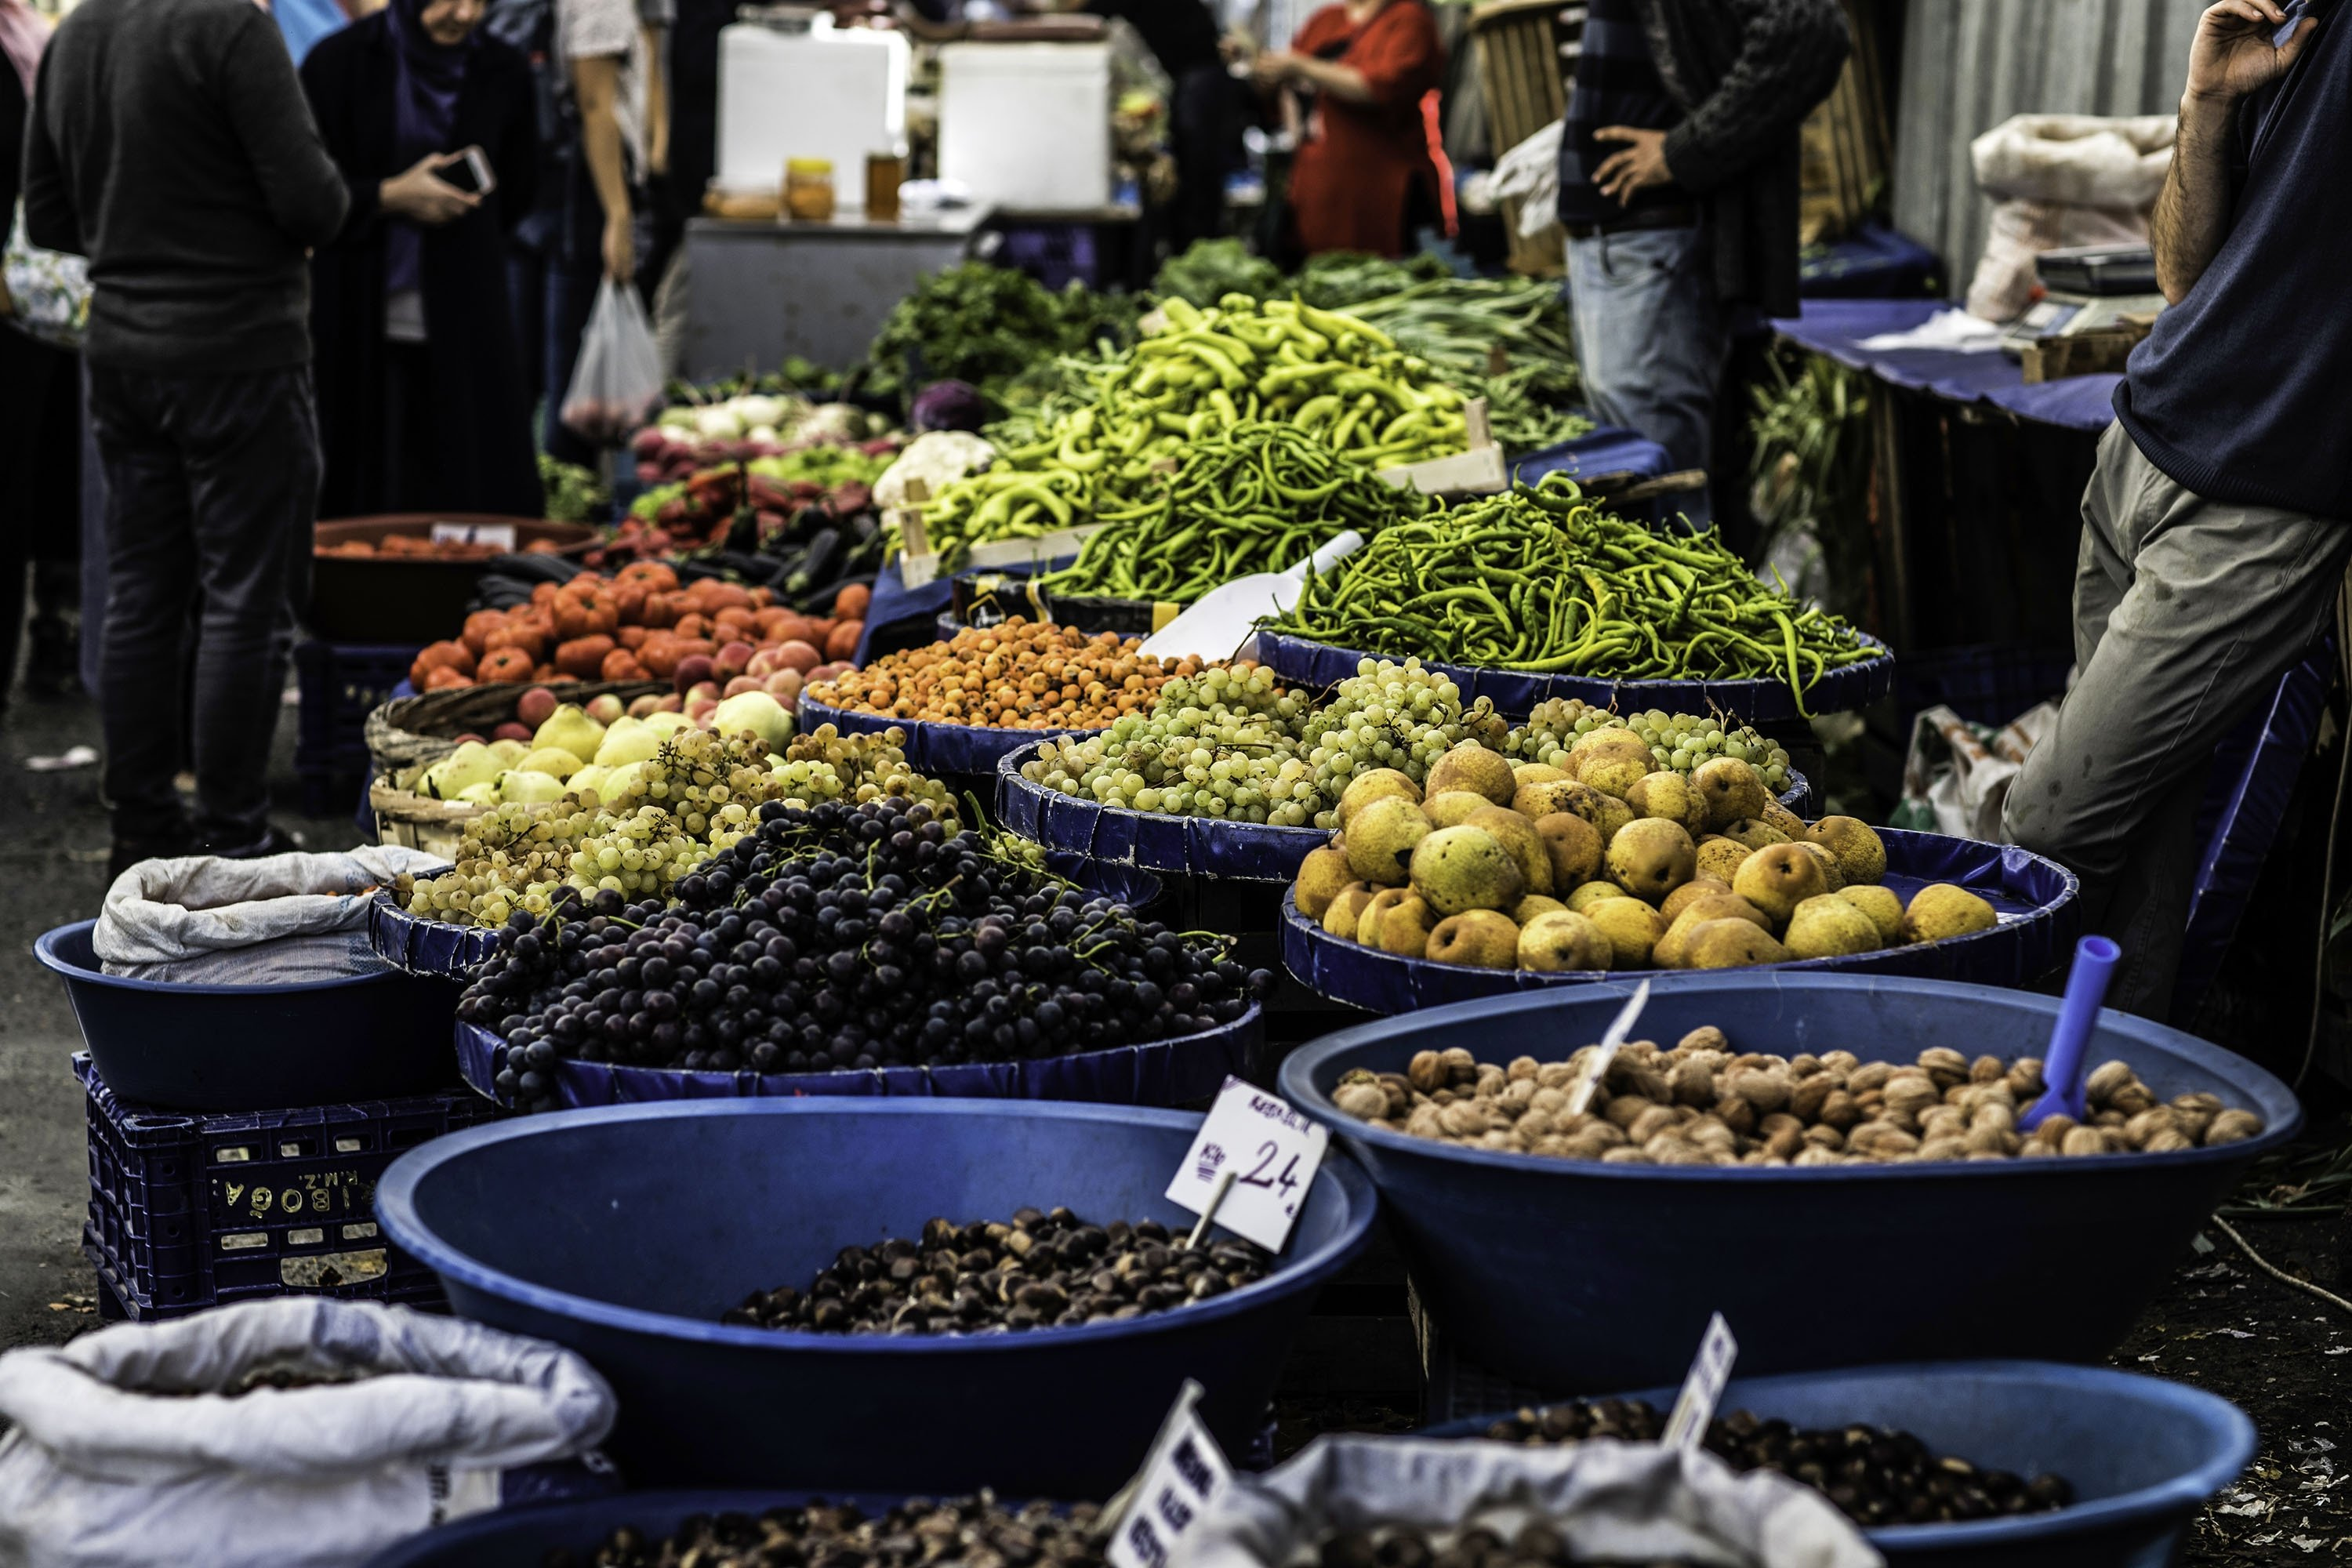 A vendor sells vegetables in the organic market in Kasımpaşa, Istanbul on October 13, 2019. (Getty Images)